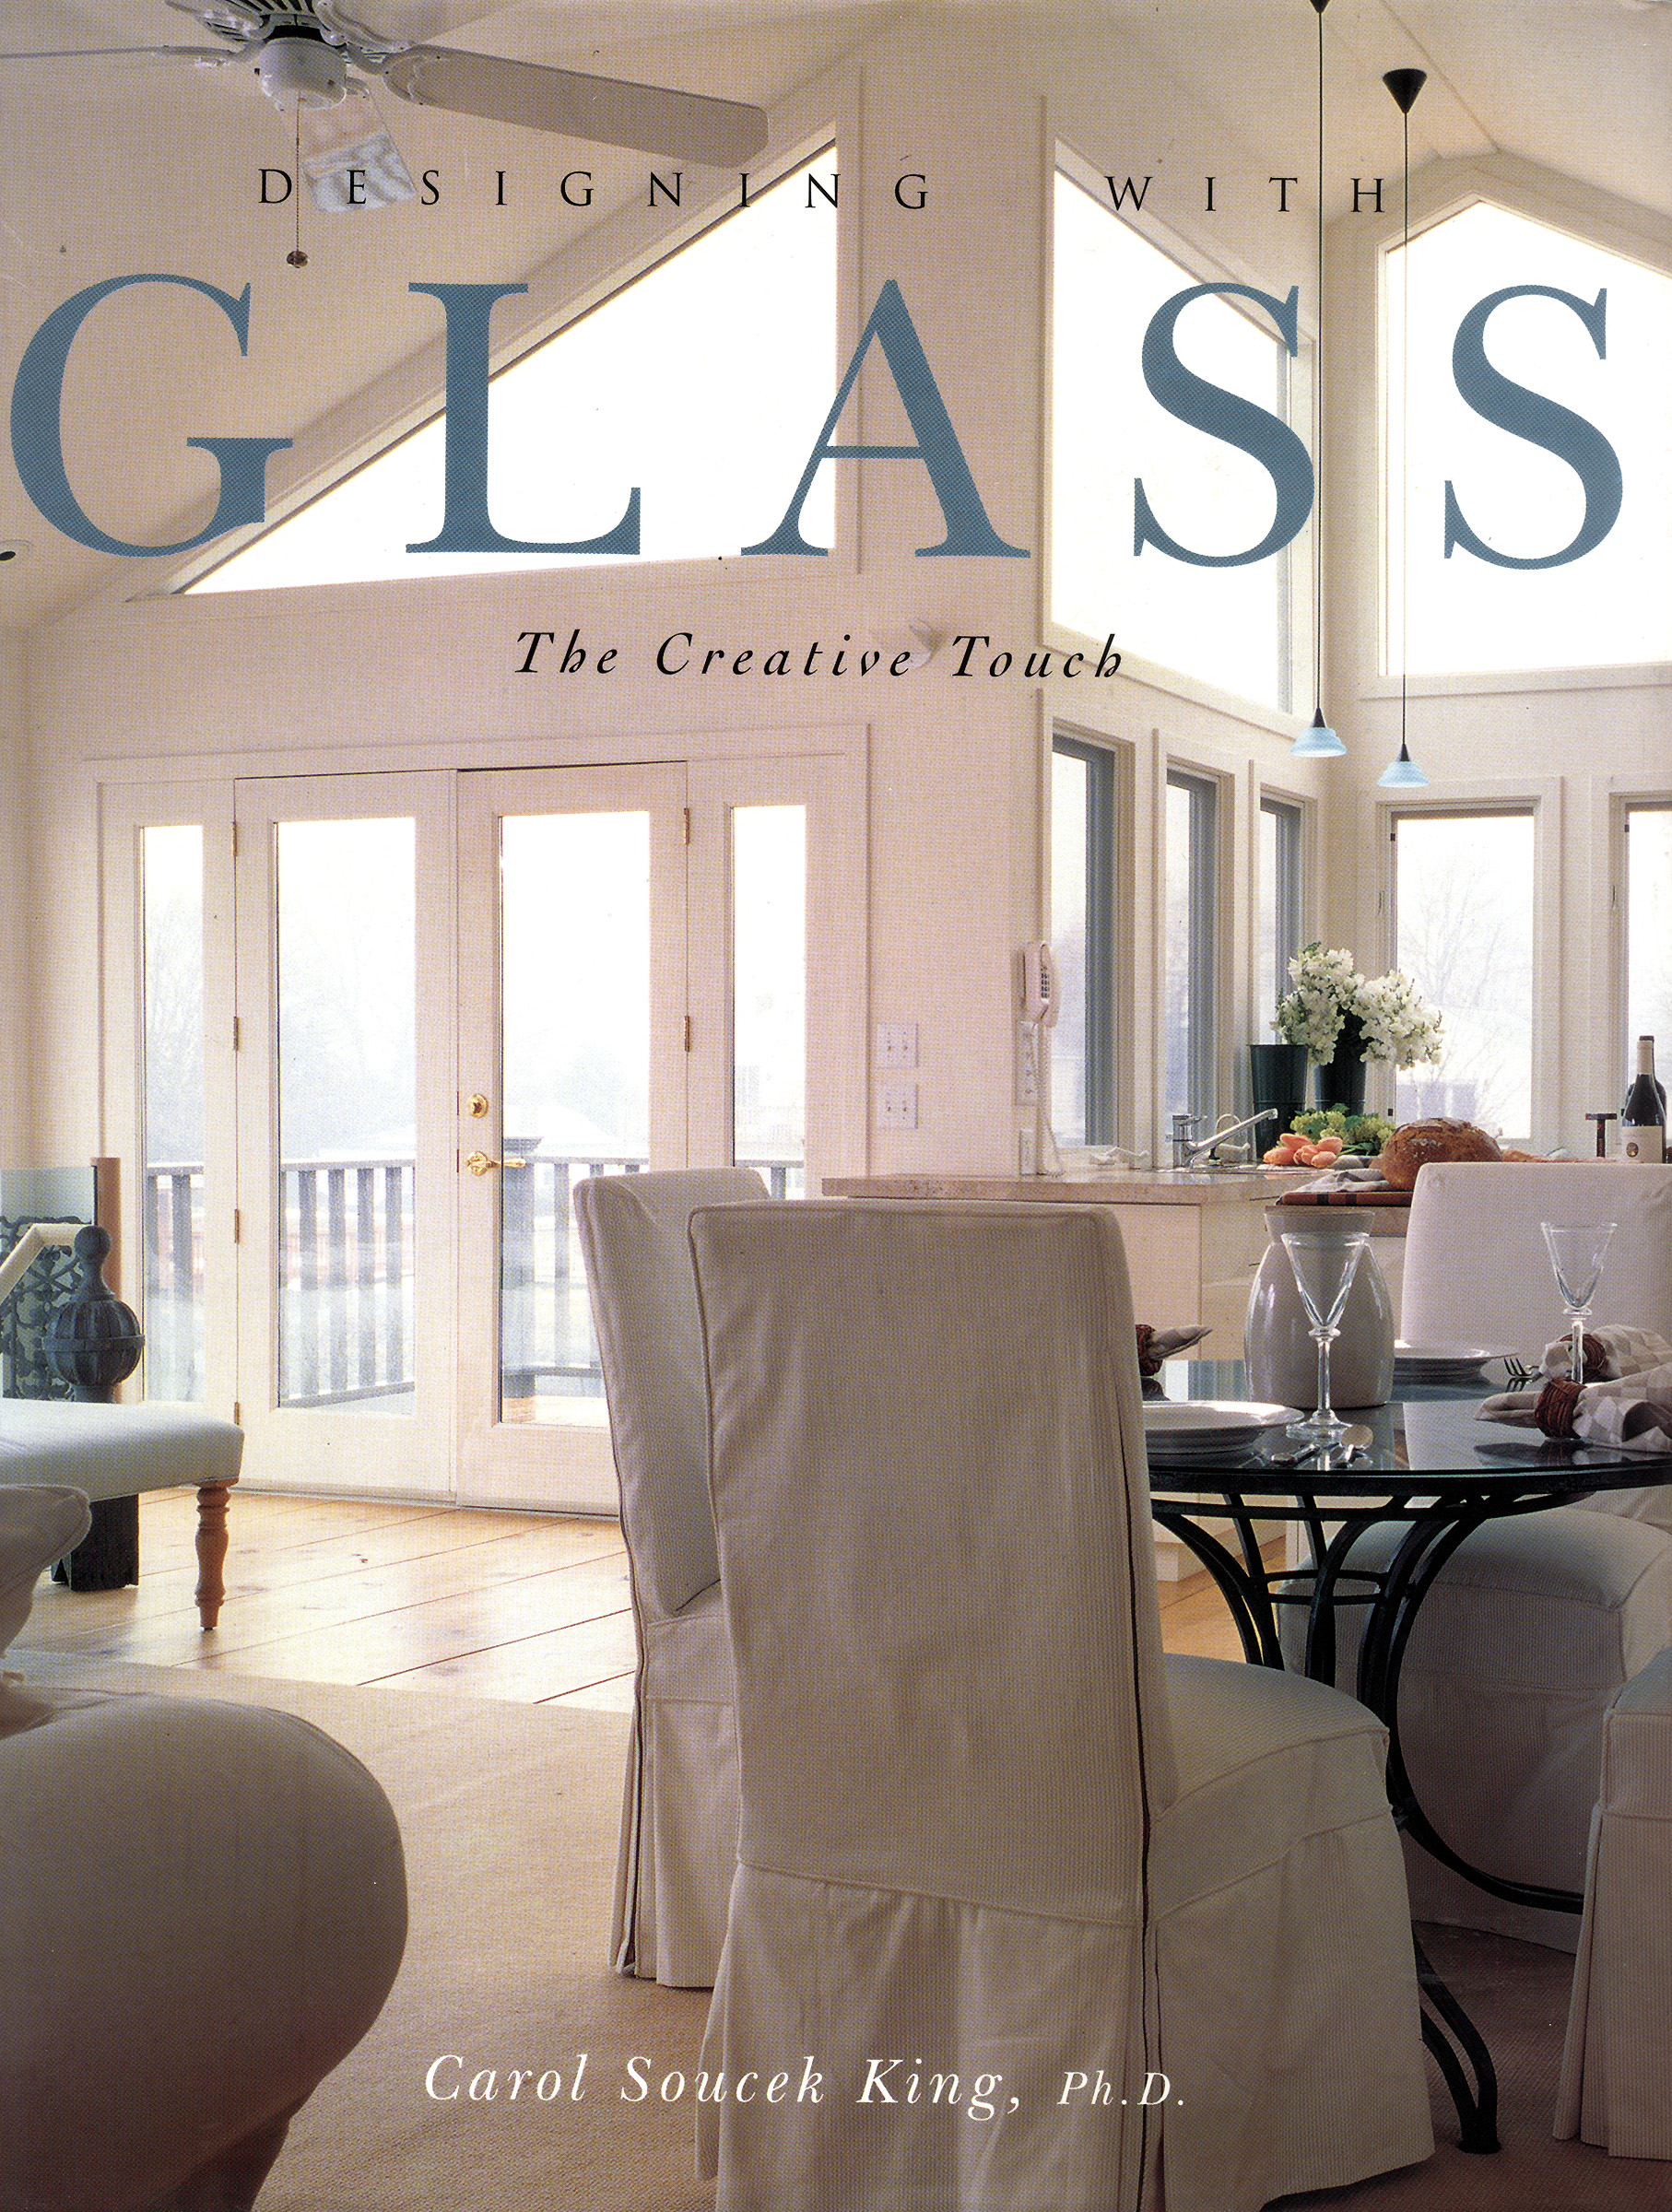 285 CPW Design with glass page 1.jpg